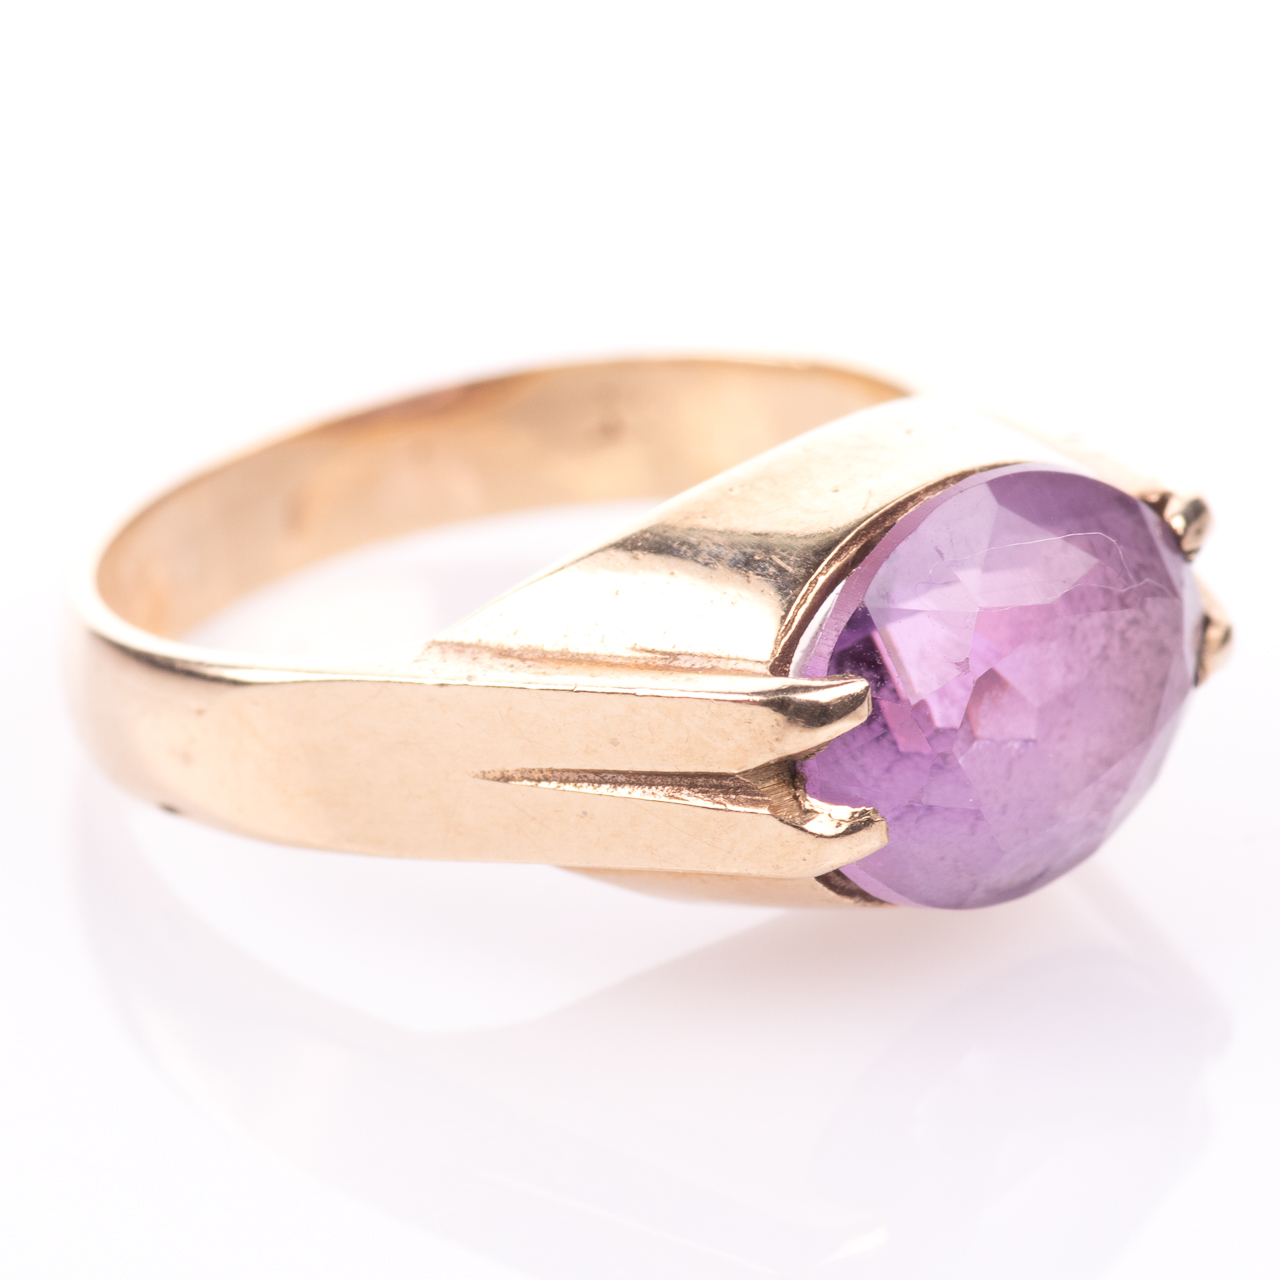 9ct Gold 3.20ct Amethyst Ring - Image 7 of 7